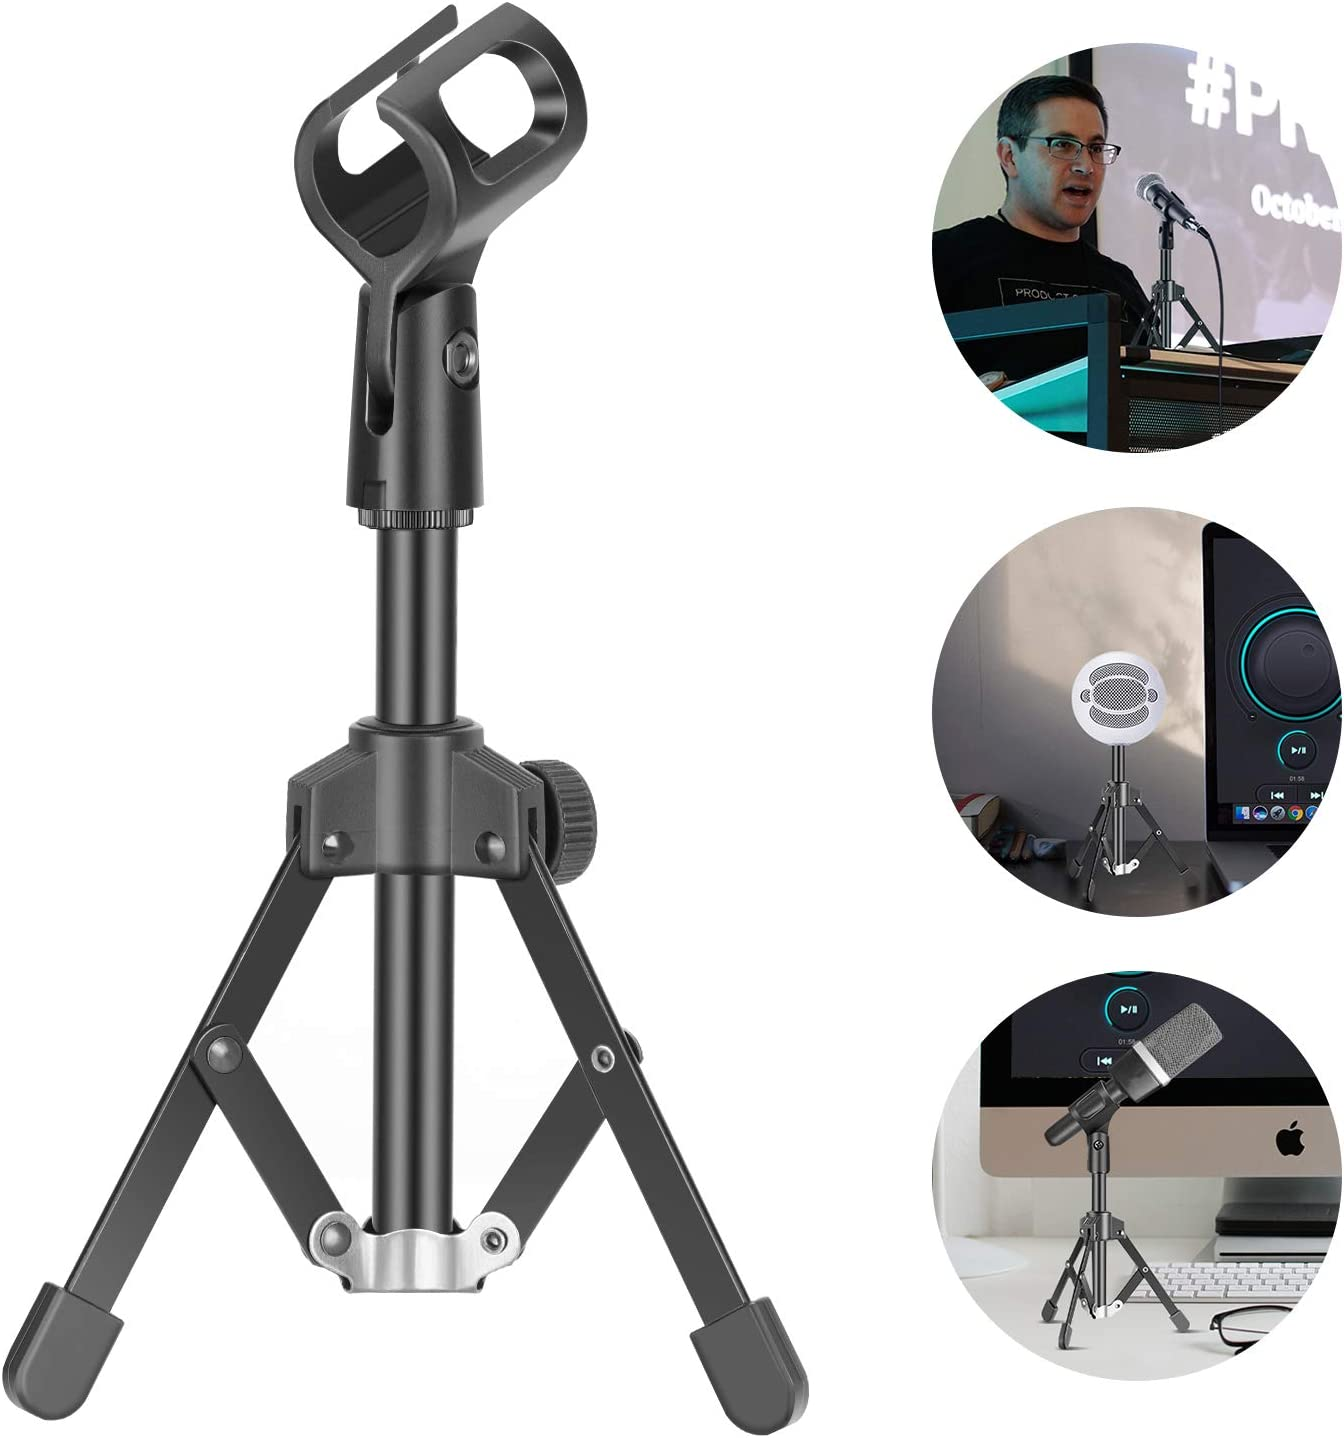 Neewer Mini Metal Foldable Desktop Tabletop Tripod Microphone Mic Stand with Mic Clip Holder, Durable Iron Construction, 3/8-inch and 5/8-inch Threaded Mount for Meetings Lectures Podcasts etc